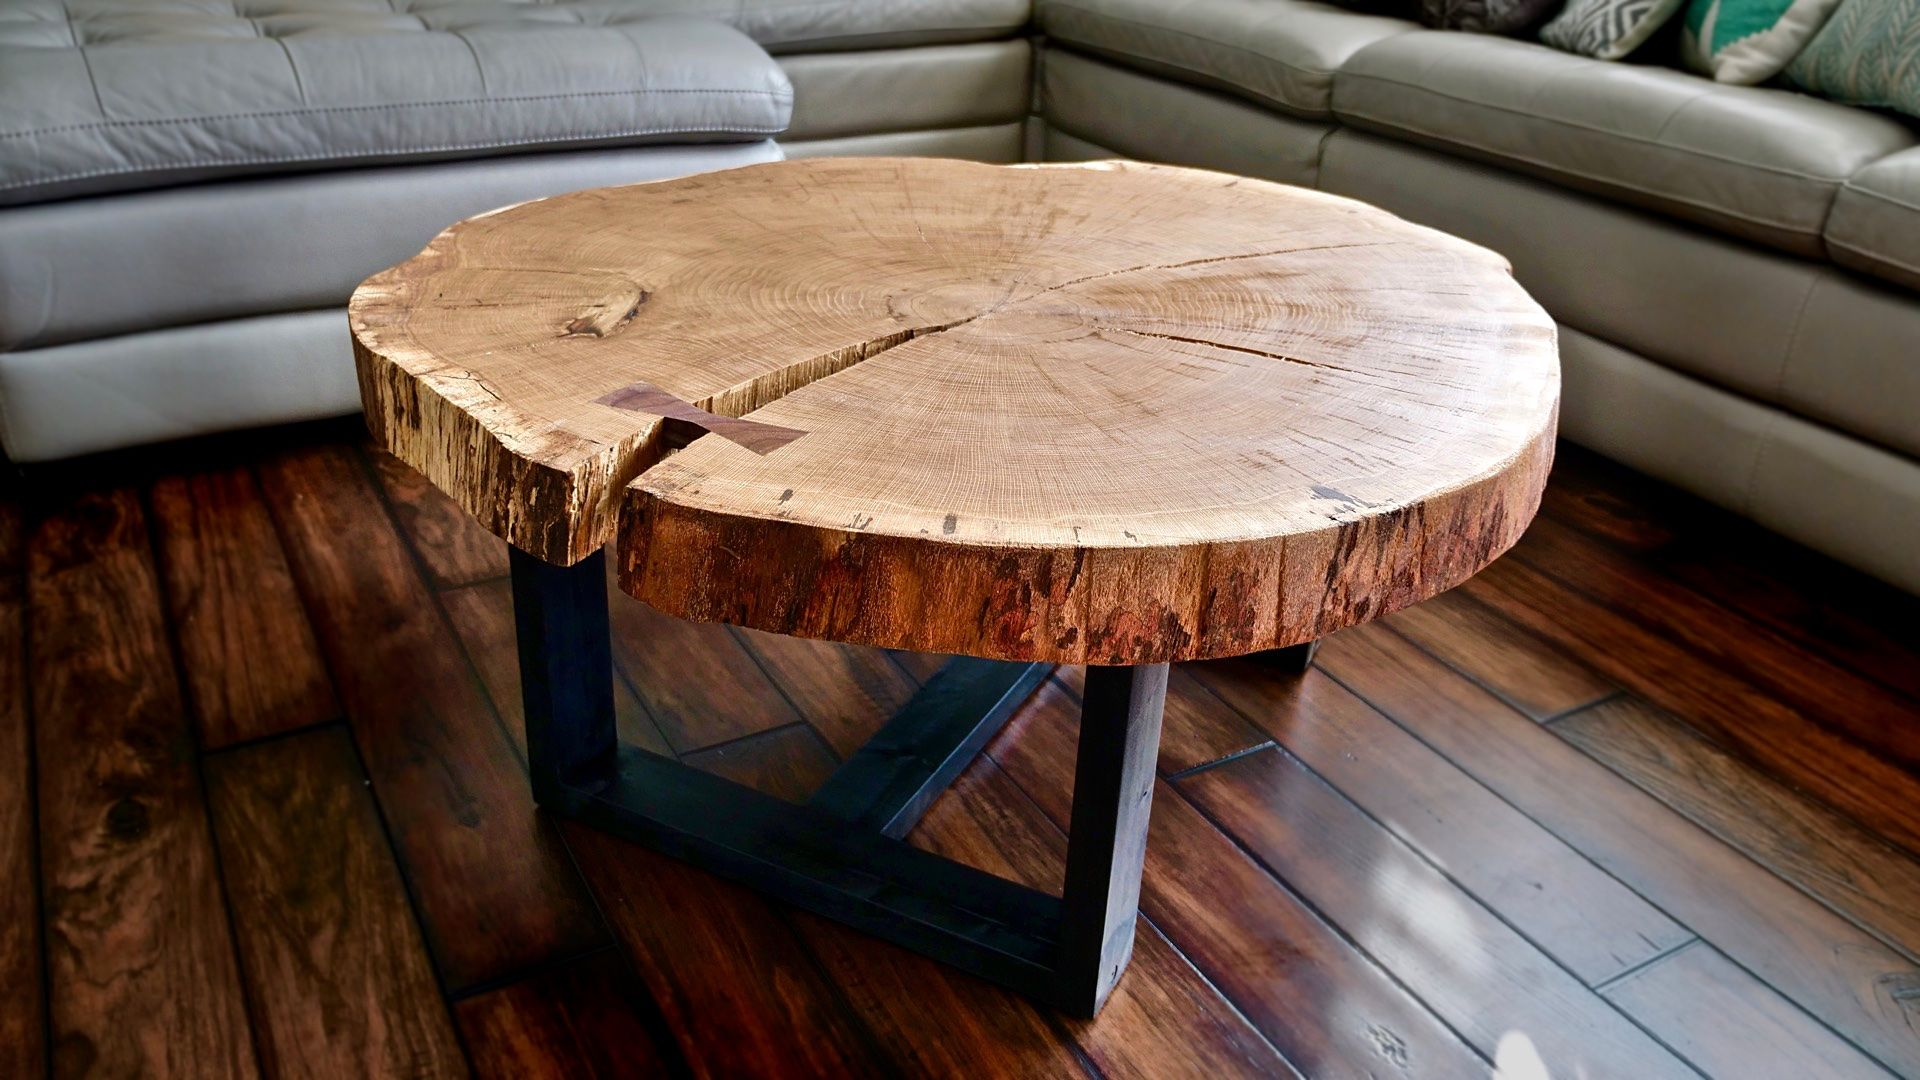 How To Build A Live Edge Coffee Table Flatten A Live Edge Slab Crafted Workshop Wood Slab Table Live Edge Wood Furniture Coffee Table Wood [ 1080 x 1920 Pixel ]